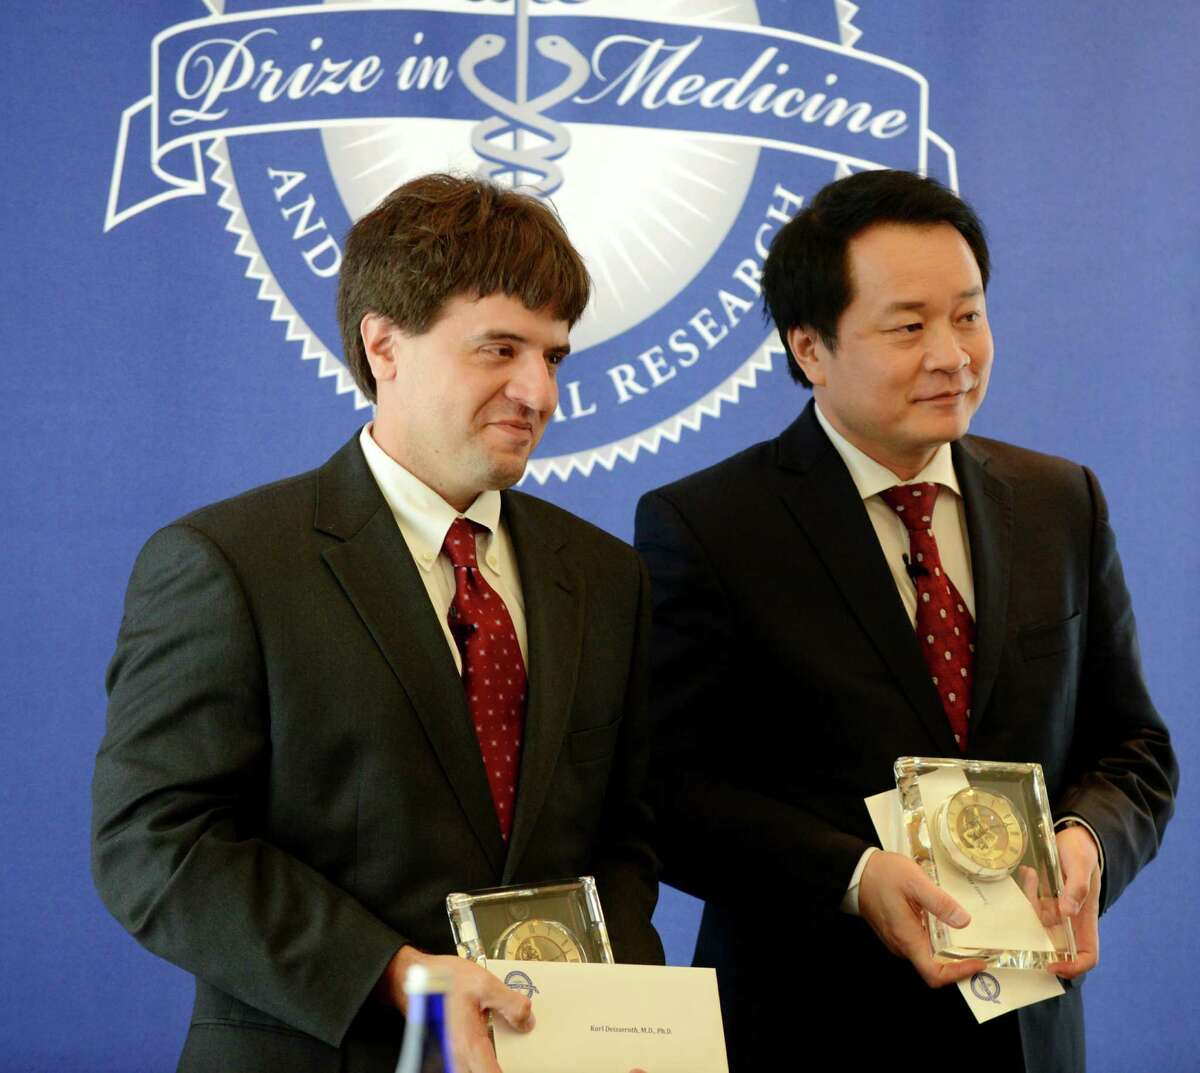 Dr. Karl Deisseroth, left, and Dr. Xiaoling Sunney Xie receive the $500,000 Albany Medical Center Prize in Biomedicine and Biomedical Research during an awards ceremony Friday, May 15, 2015, in Albany, N.Y. Karl Deisseroth, a professor at Stanford University, has been recognized for his work developing methods that allow scientists to understand how the brain?'s circuitry works, and how specific neurons play a role in conditions like Parkinson?'s disease, addiction and depression, as well as normal processes like memory and learning. Xiaoliang Sunney Xie of Harvard University was selected for work that allows scientists to pinpoint genomic changes in a single cell. His work has major implications in such fields as cancer research and in-vitro fertilization. (Will Waldron/Times Union)